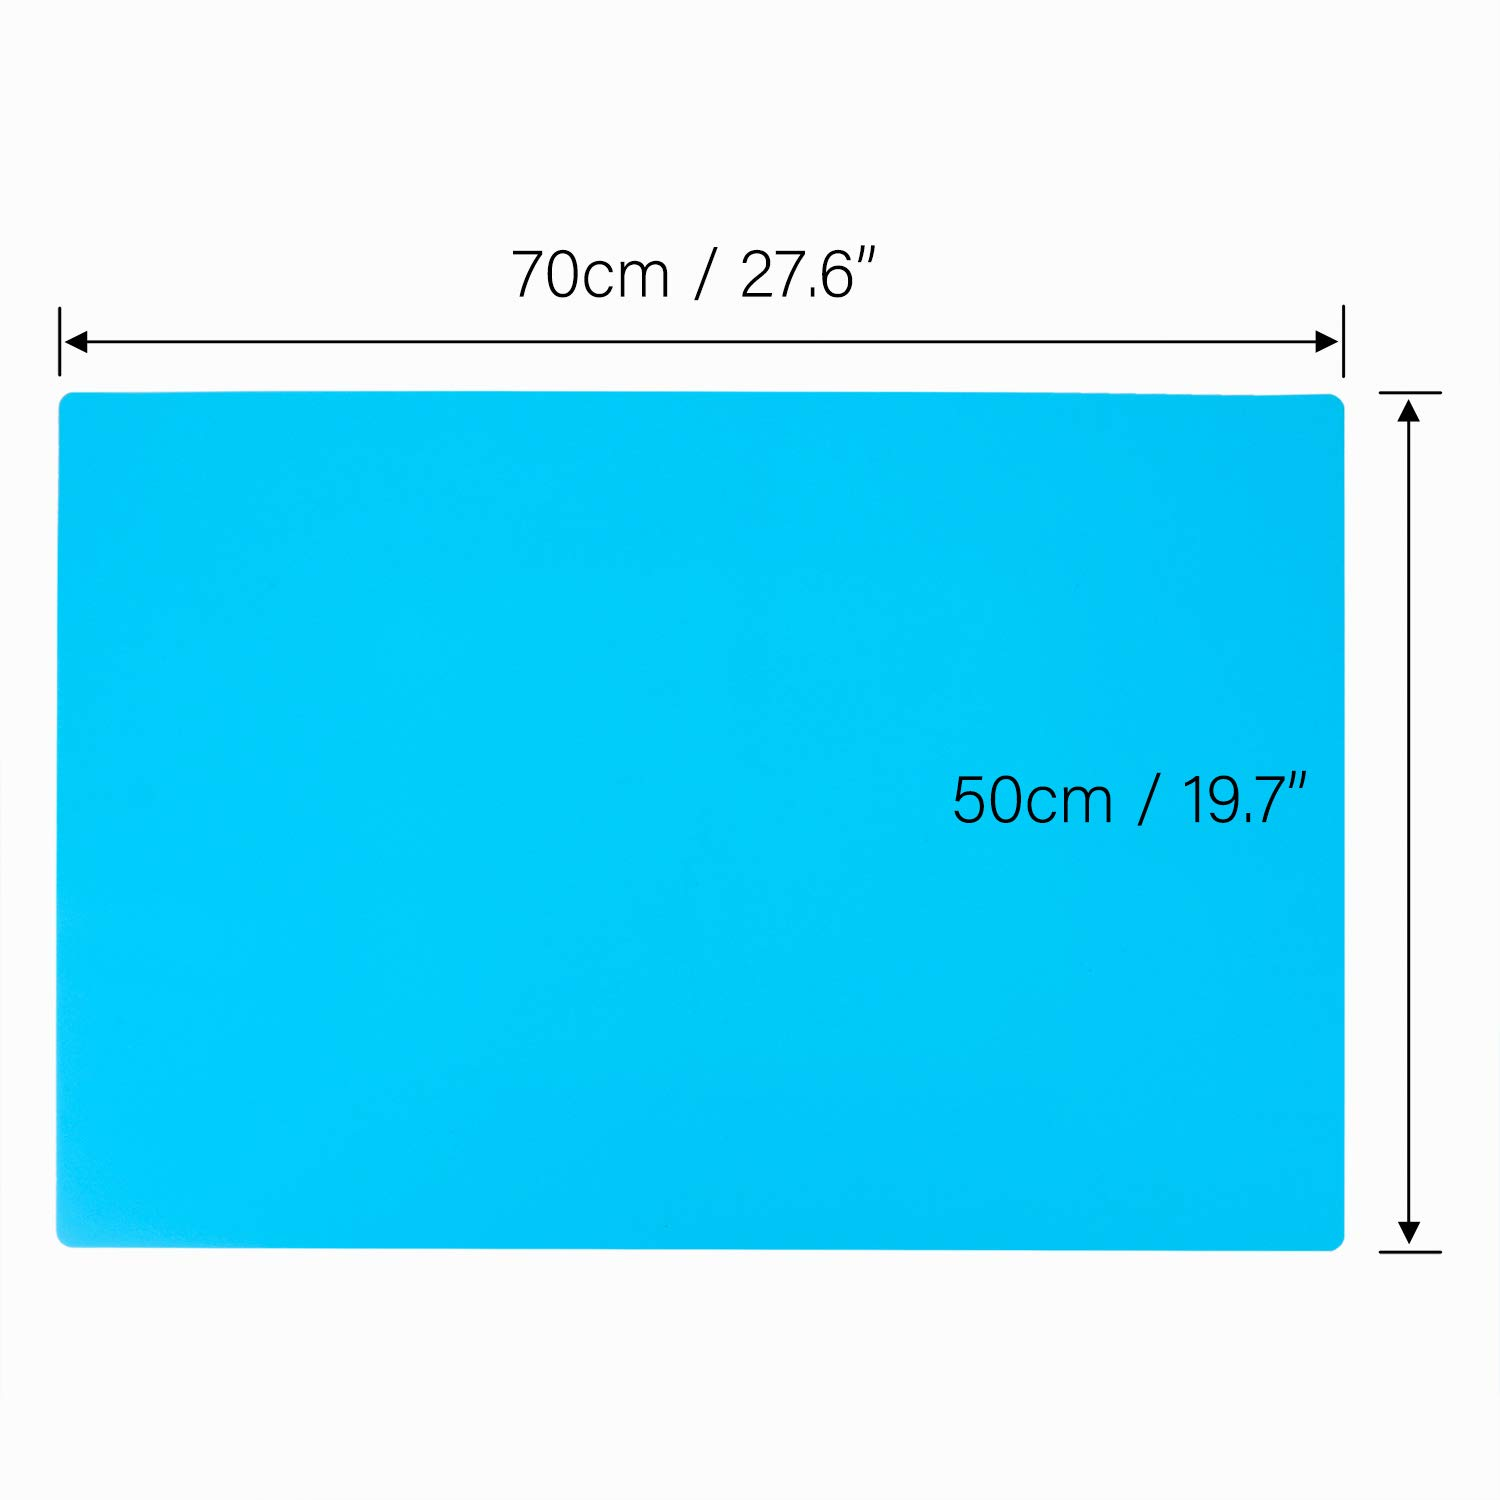 Glitter Slime Gartful Nonstick Silicone Craft Sheets for Resin Molds 27.6 x 19.7 inches Oversize Silicone Mats Multipurpose Countertop Mats for Epoxy Resin Blue Paint